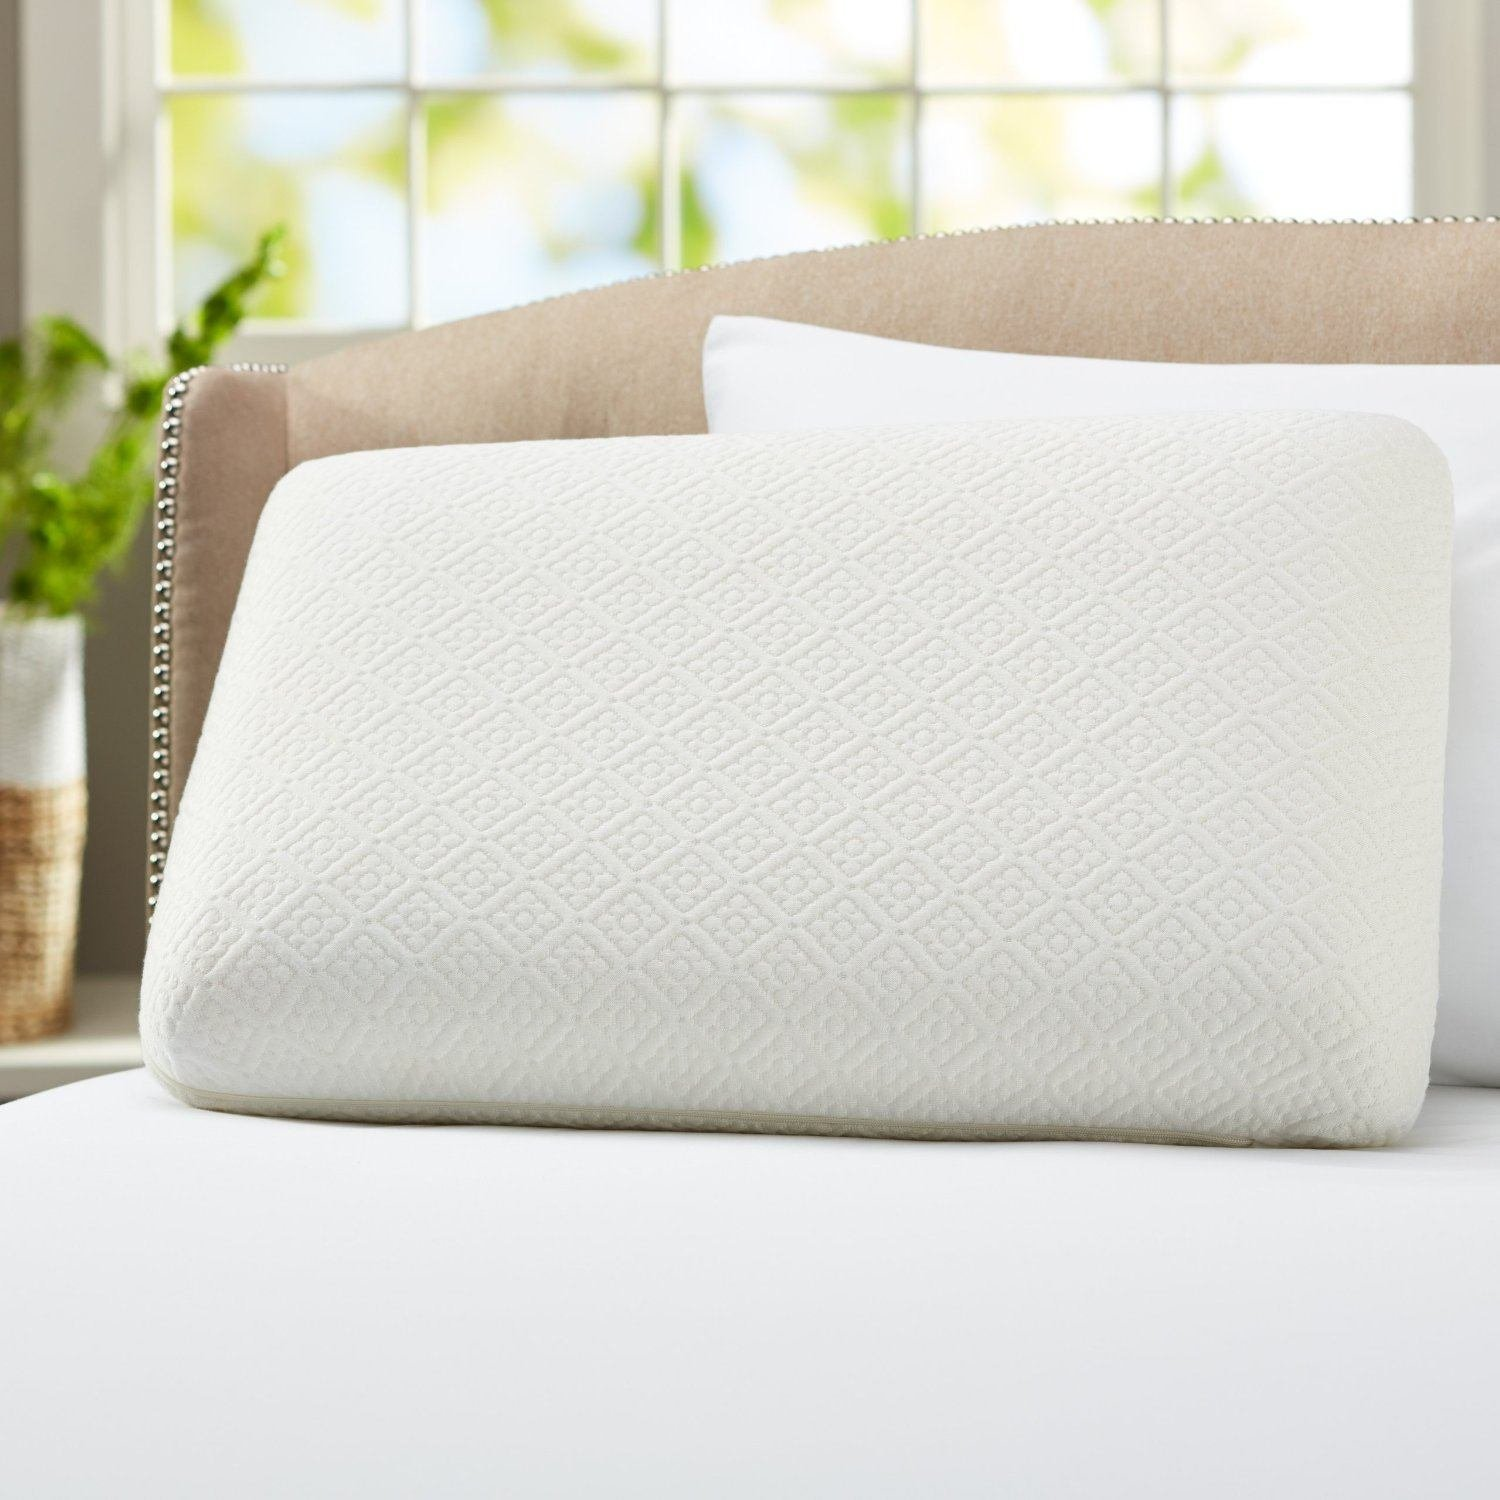 case pillow best guys hot sleep always you size that cover flashes pillowcase pillows keep cases for full cool of cooling